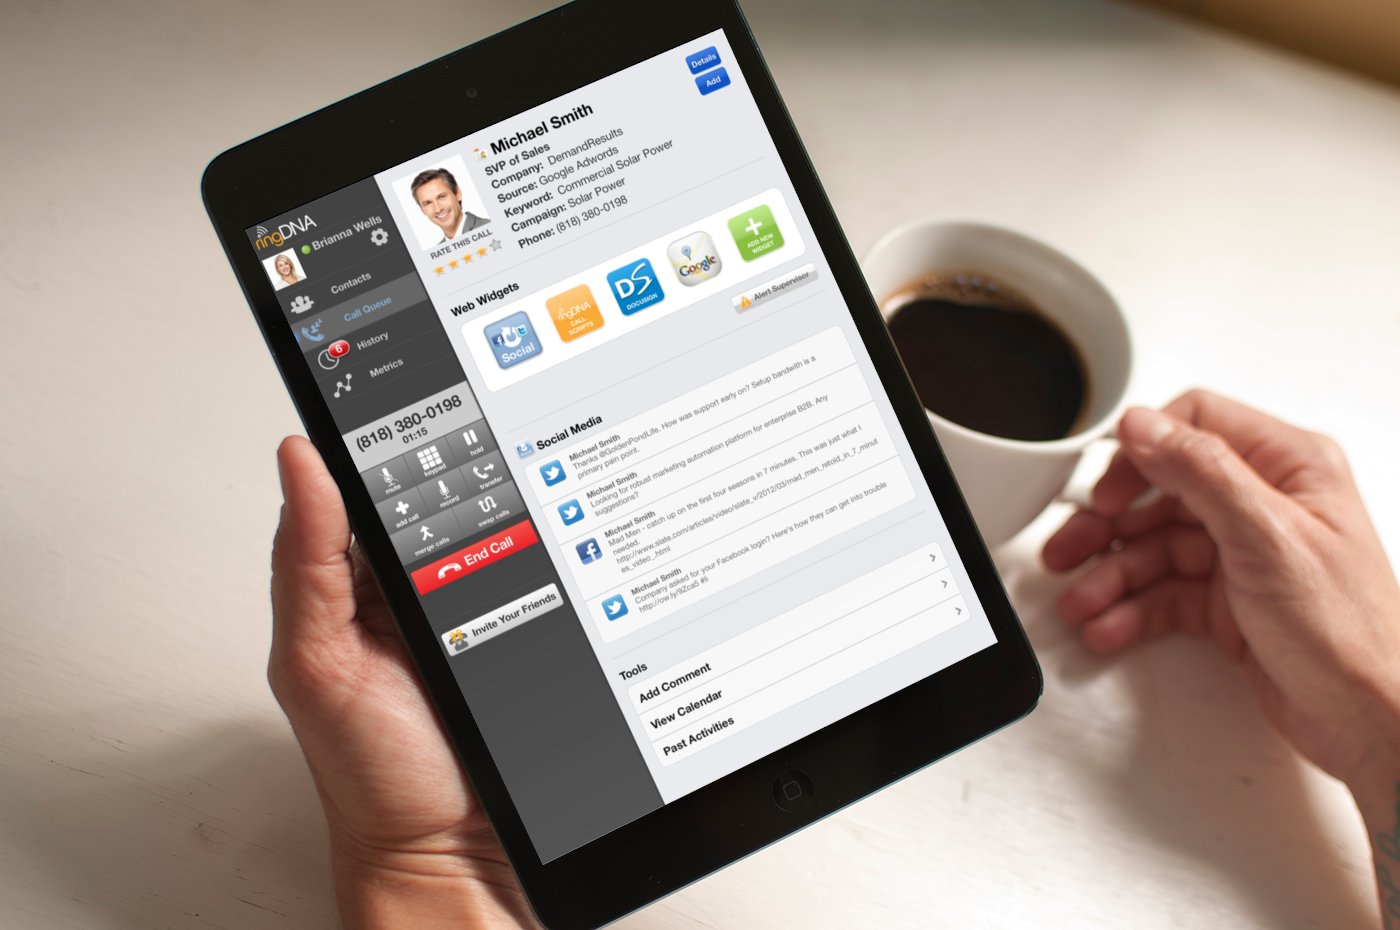 Mobile Crm An Ultimate Mobile Application Development To